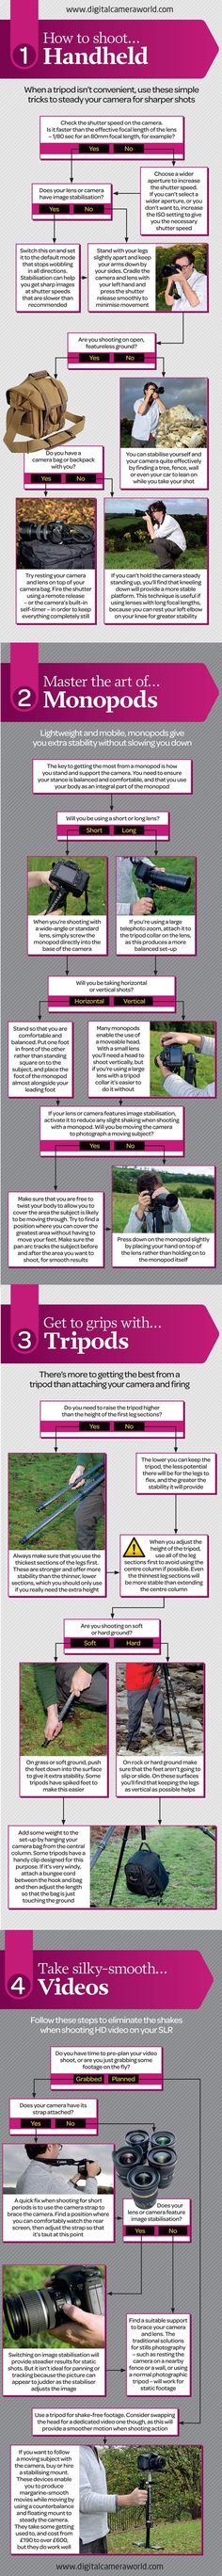 Always love helpful tips to improve my  photography.